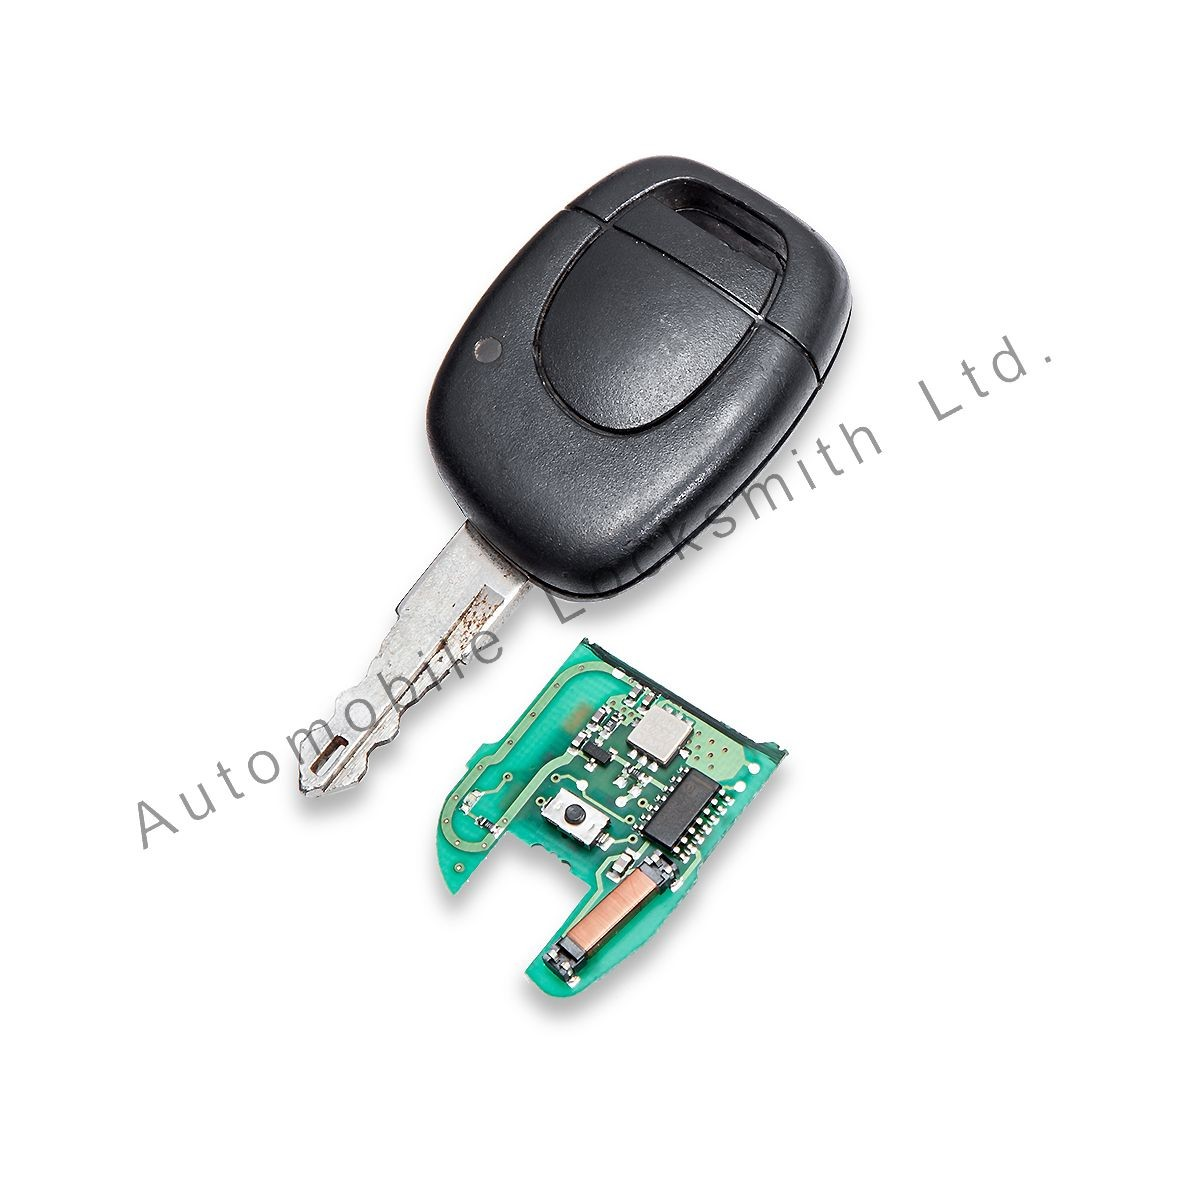 Repair service for Renault 1 button remote key